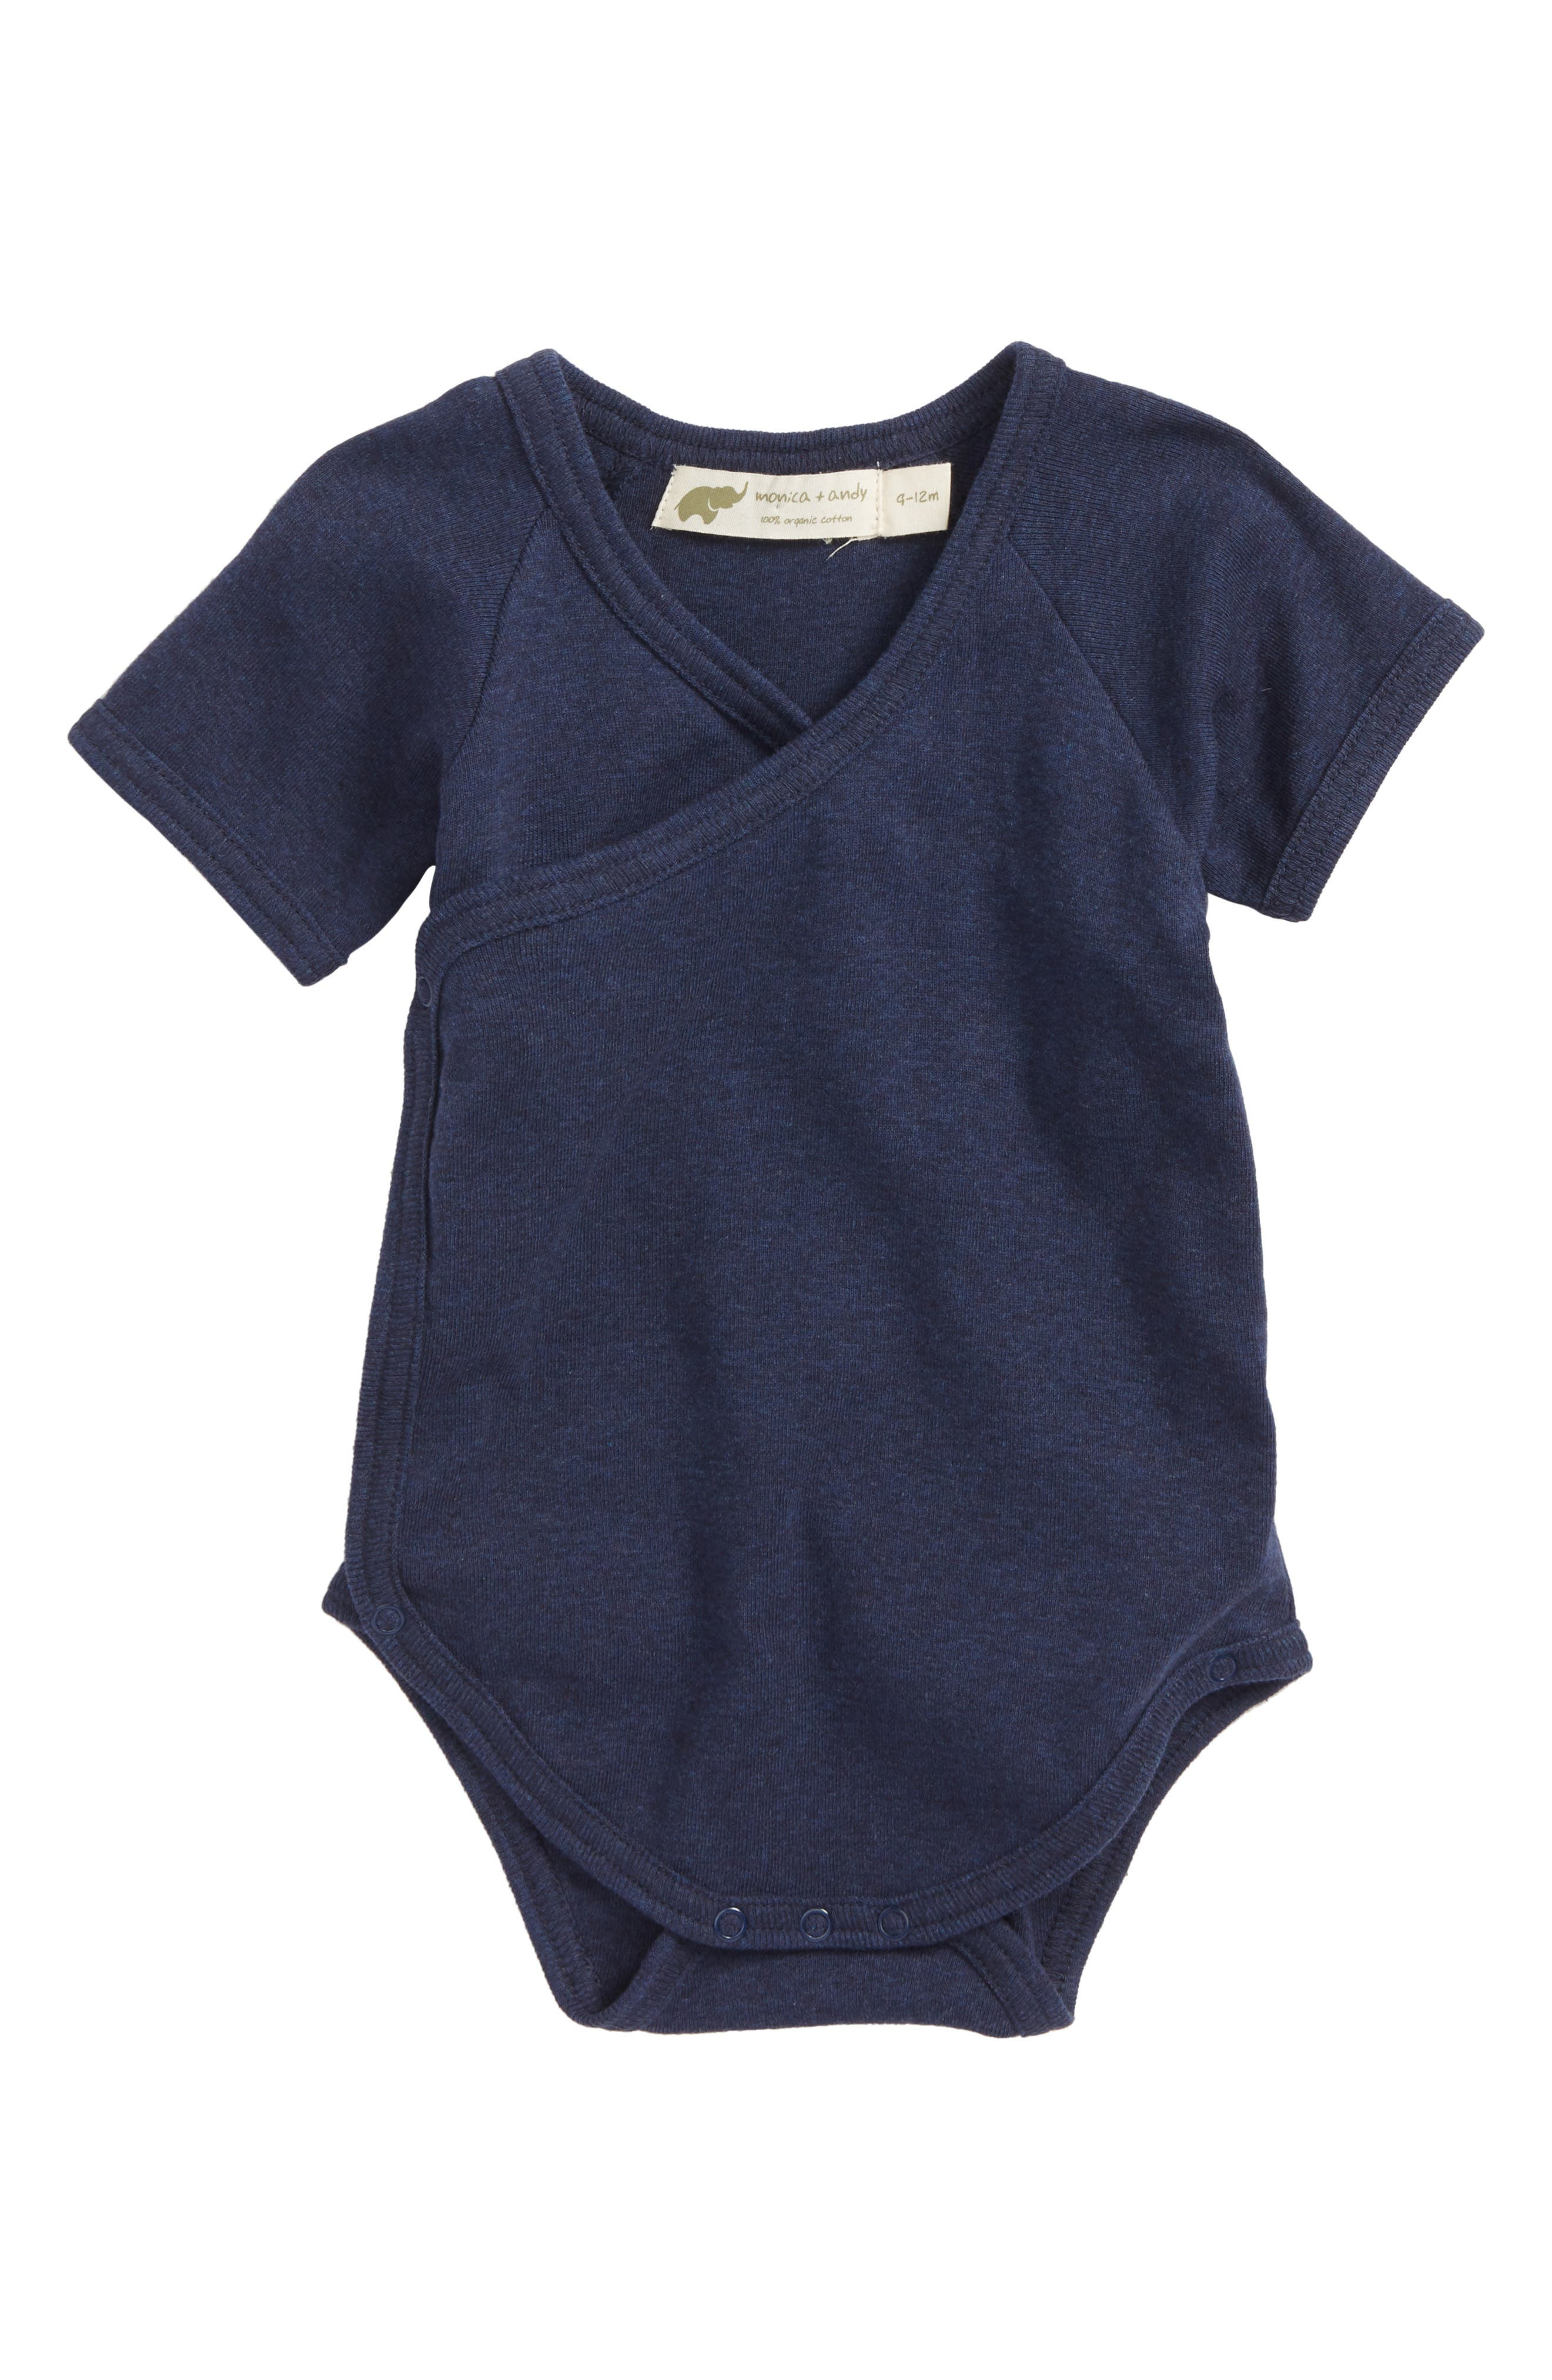 Alternate Image 1 Selected - Monica + Andy Lucky Surplice Organic Cotton Bodysuit (Baby)